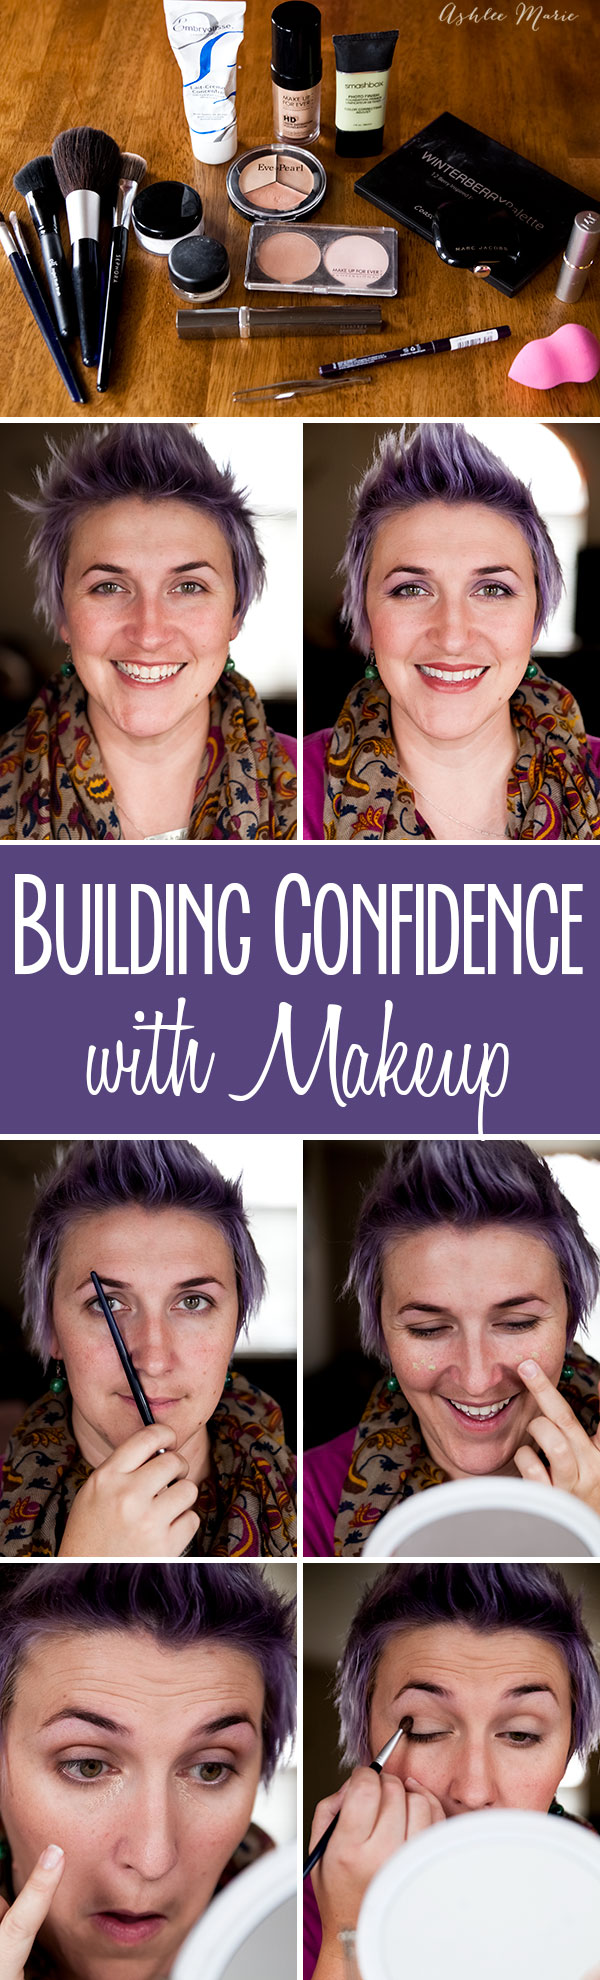 while confidence comes from within sometimes you can help it along by taking care of the outside, my makeup routine that helps me feel more me